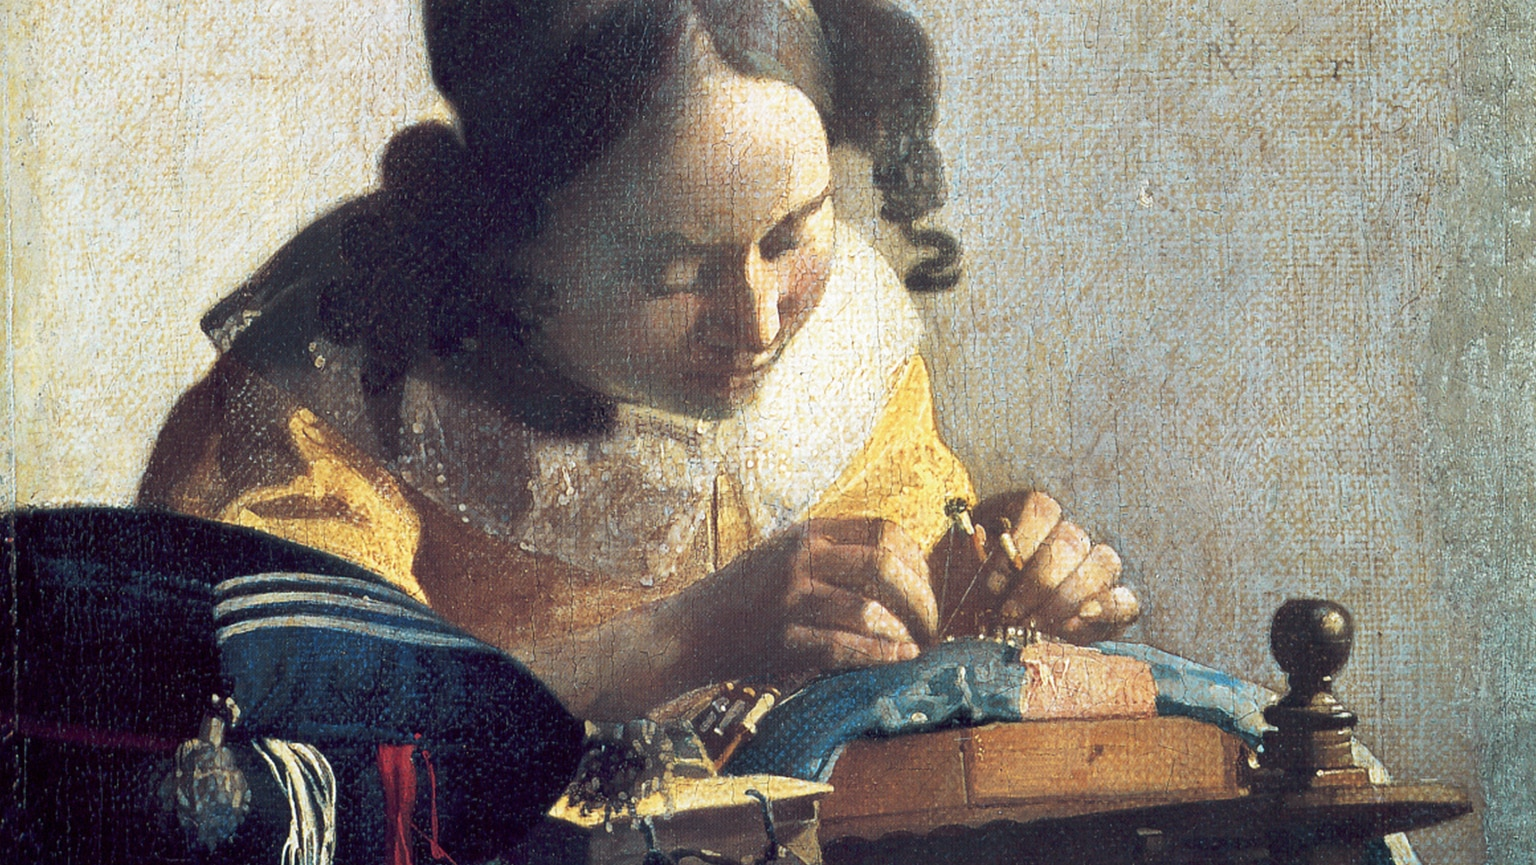 Rembrandt, Vermeer, and Dutch Painting